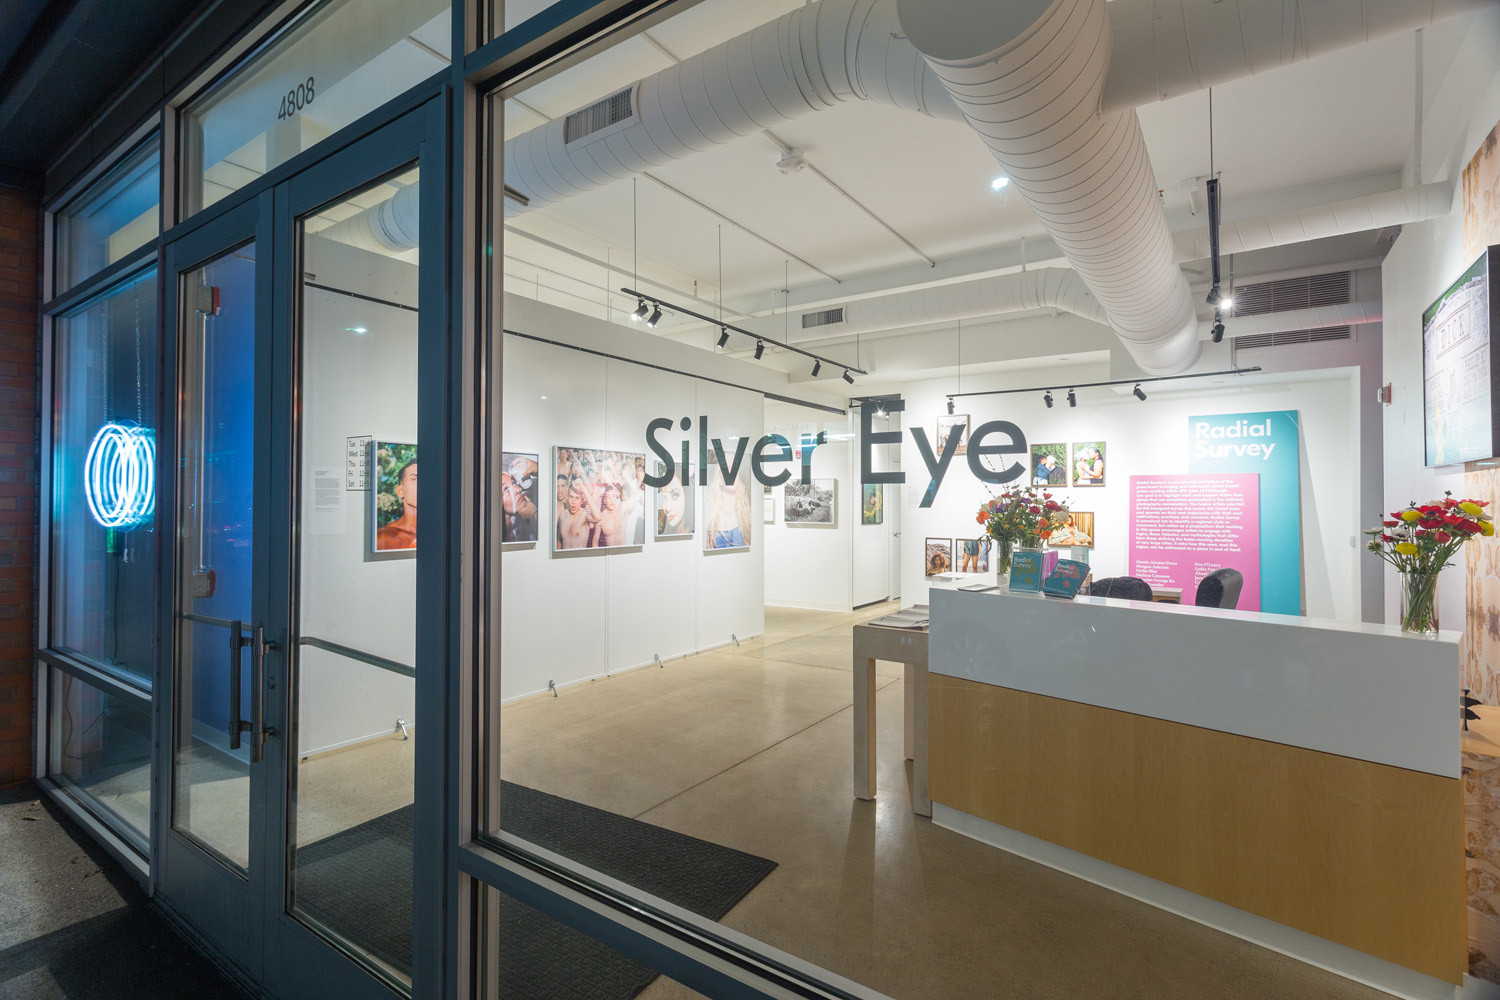 Silver Eye Center for Photography, Radial Survey 2019, Installation